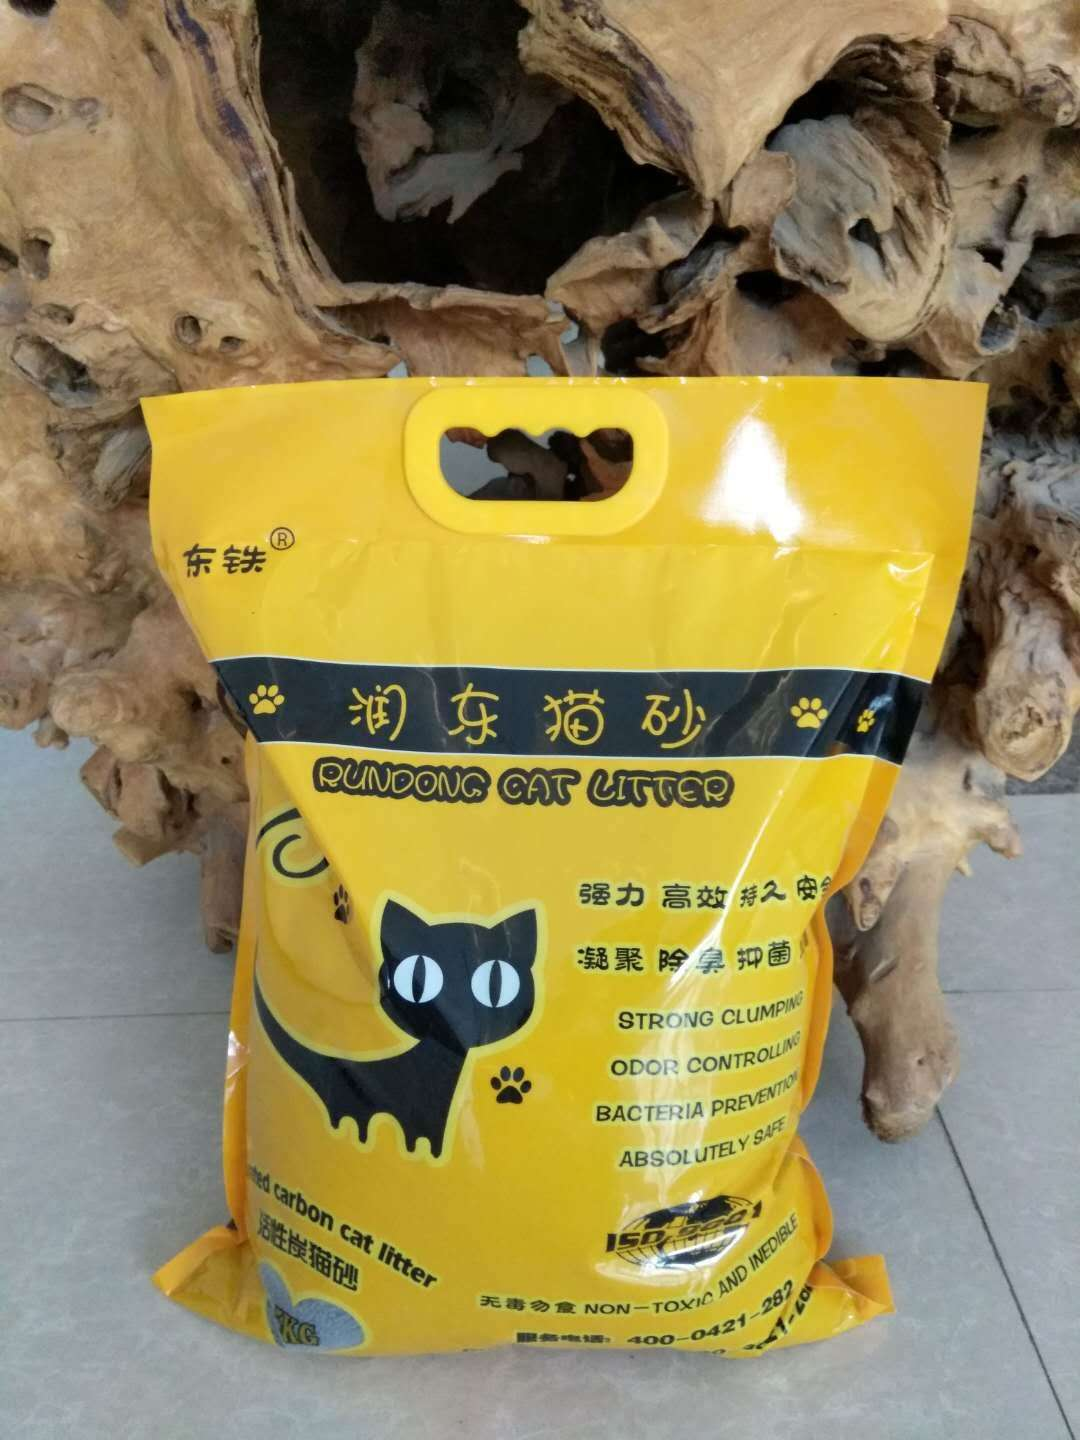 Activated carbon cat litter